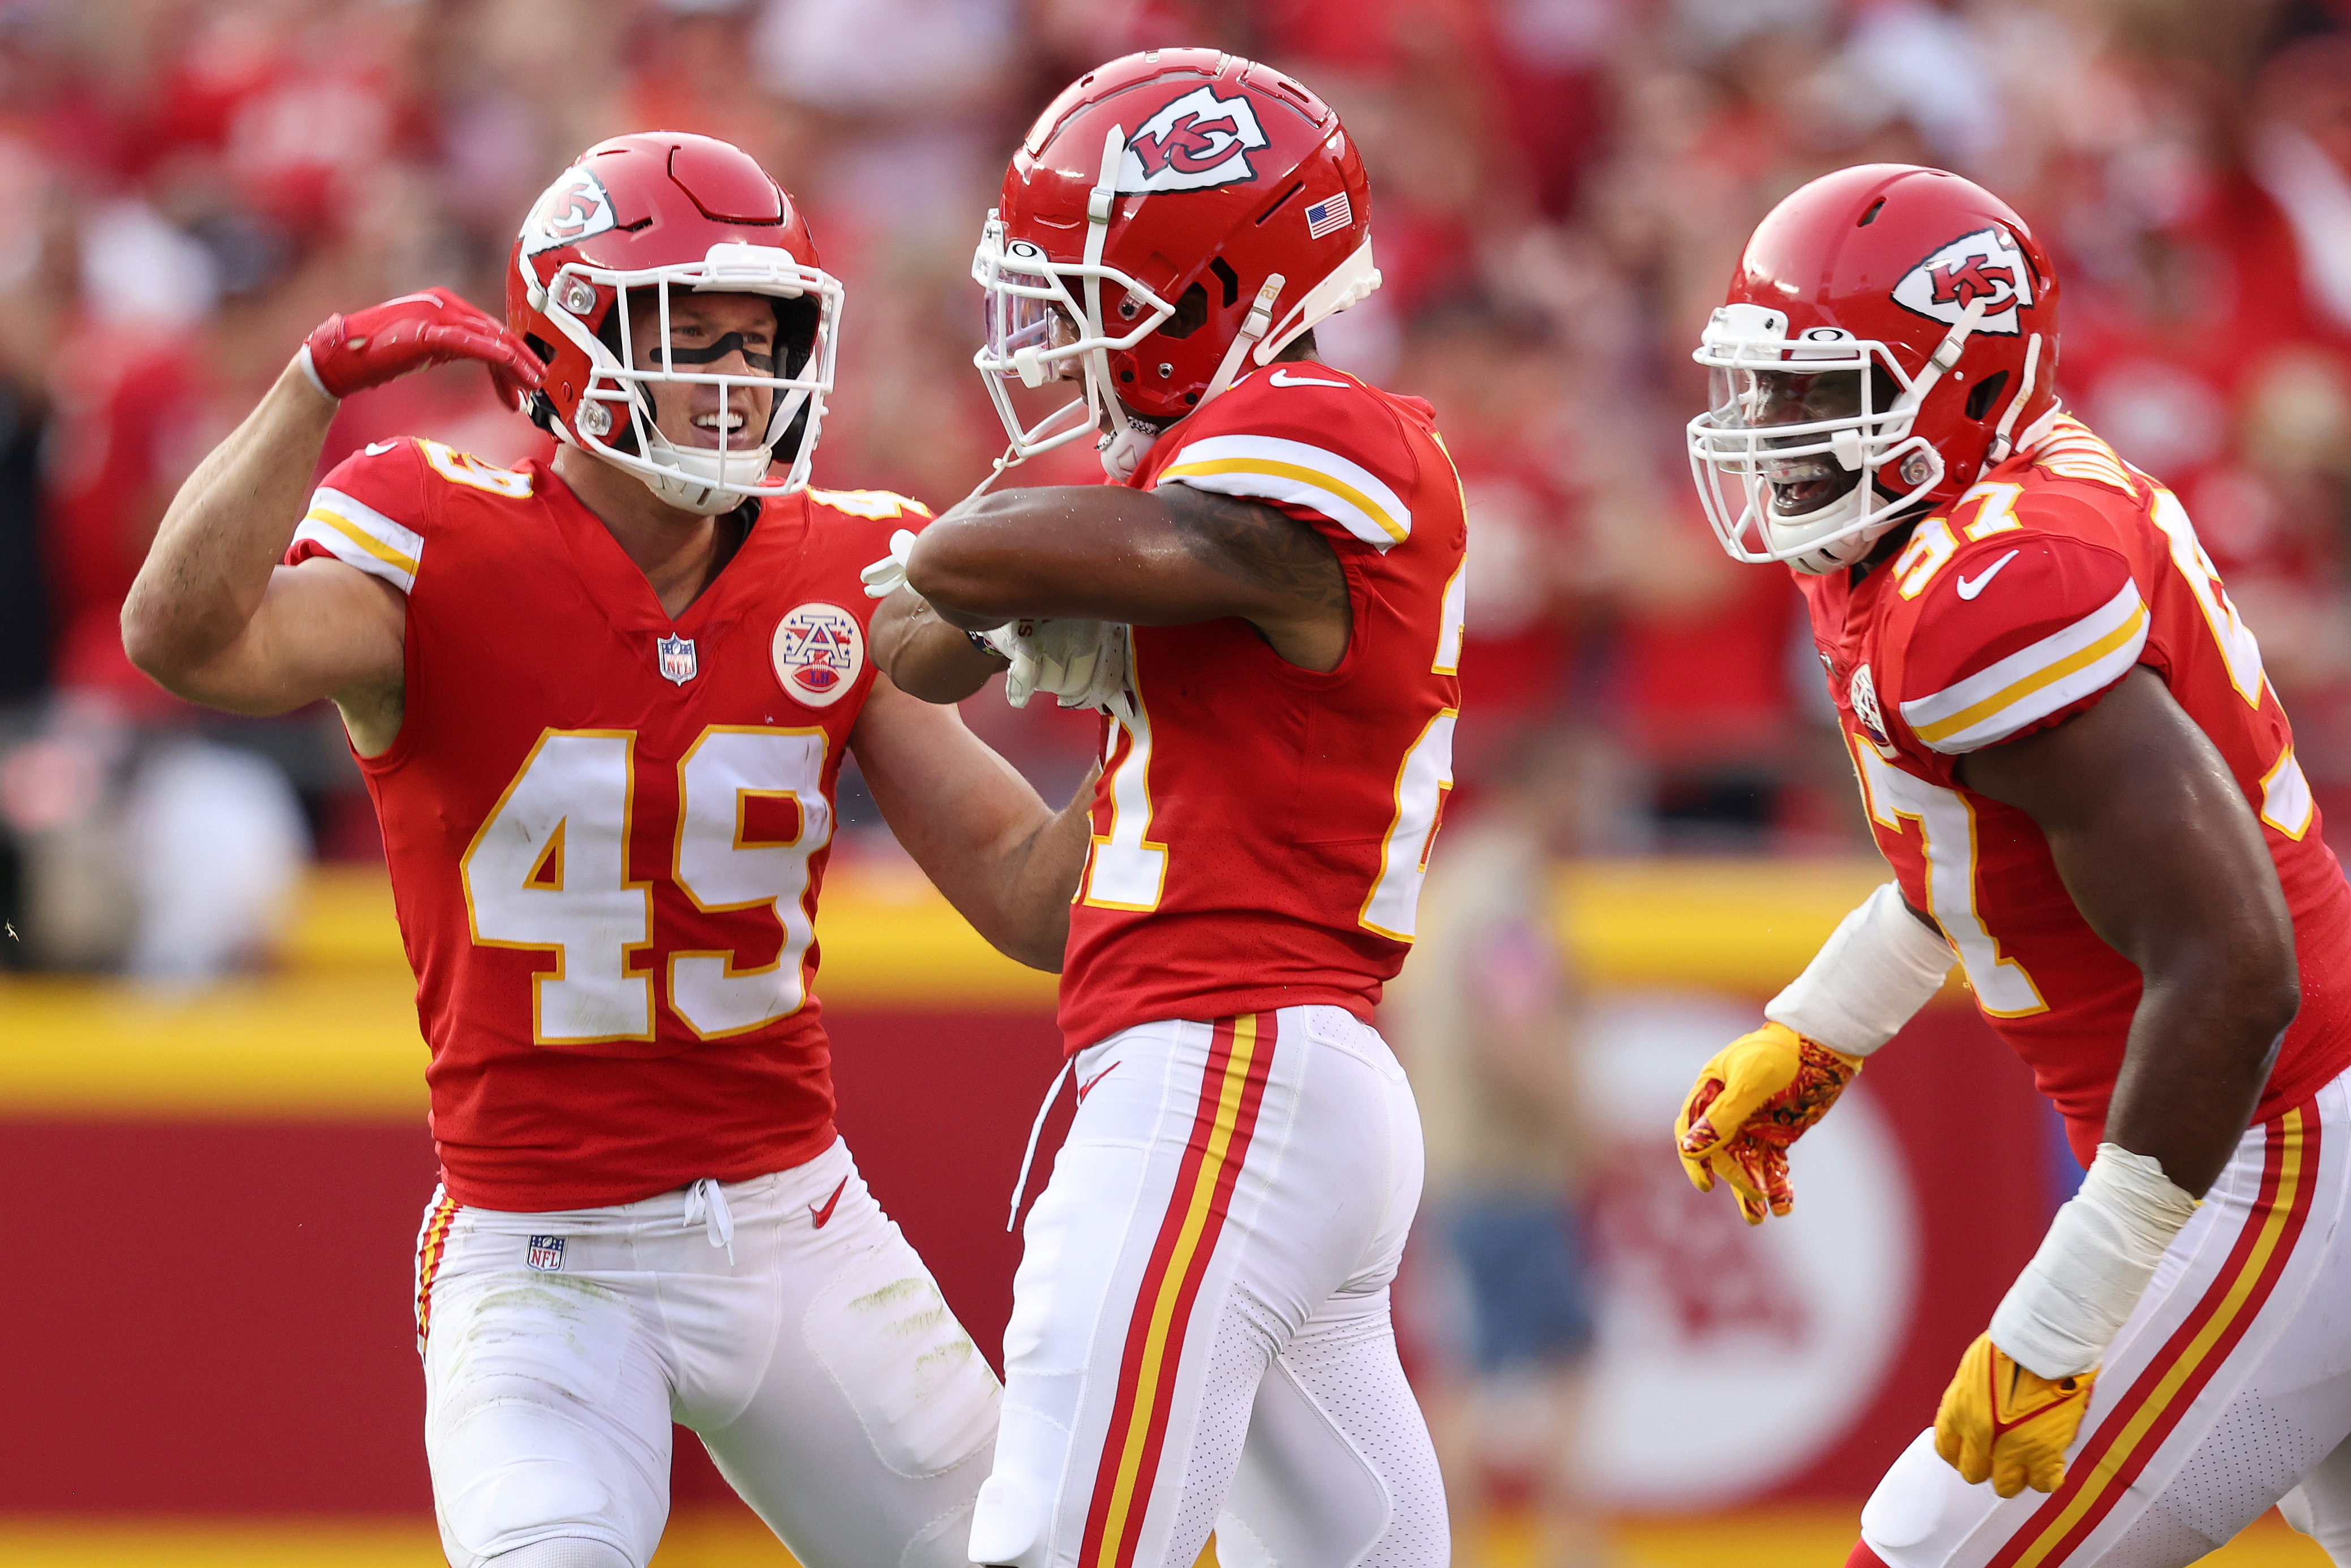 Mike Hughes #21 of the Kansas City Chiefs celebrates with Daniel Sorensen #49 and Malik Herring #97 against the Cleveland Browns during the second half at Arrowhead Stadium on September 12, 2021 in Kansas City, Missouri.